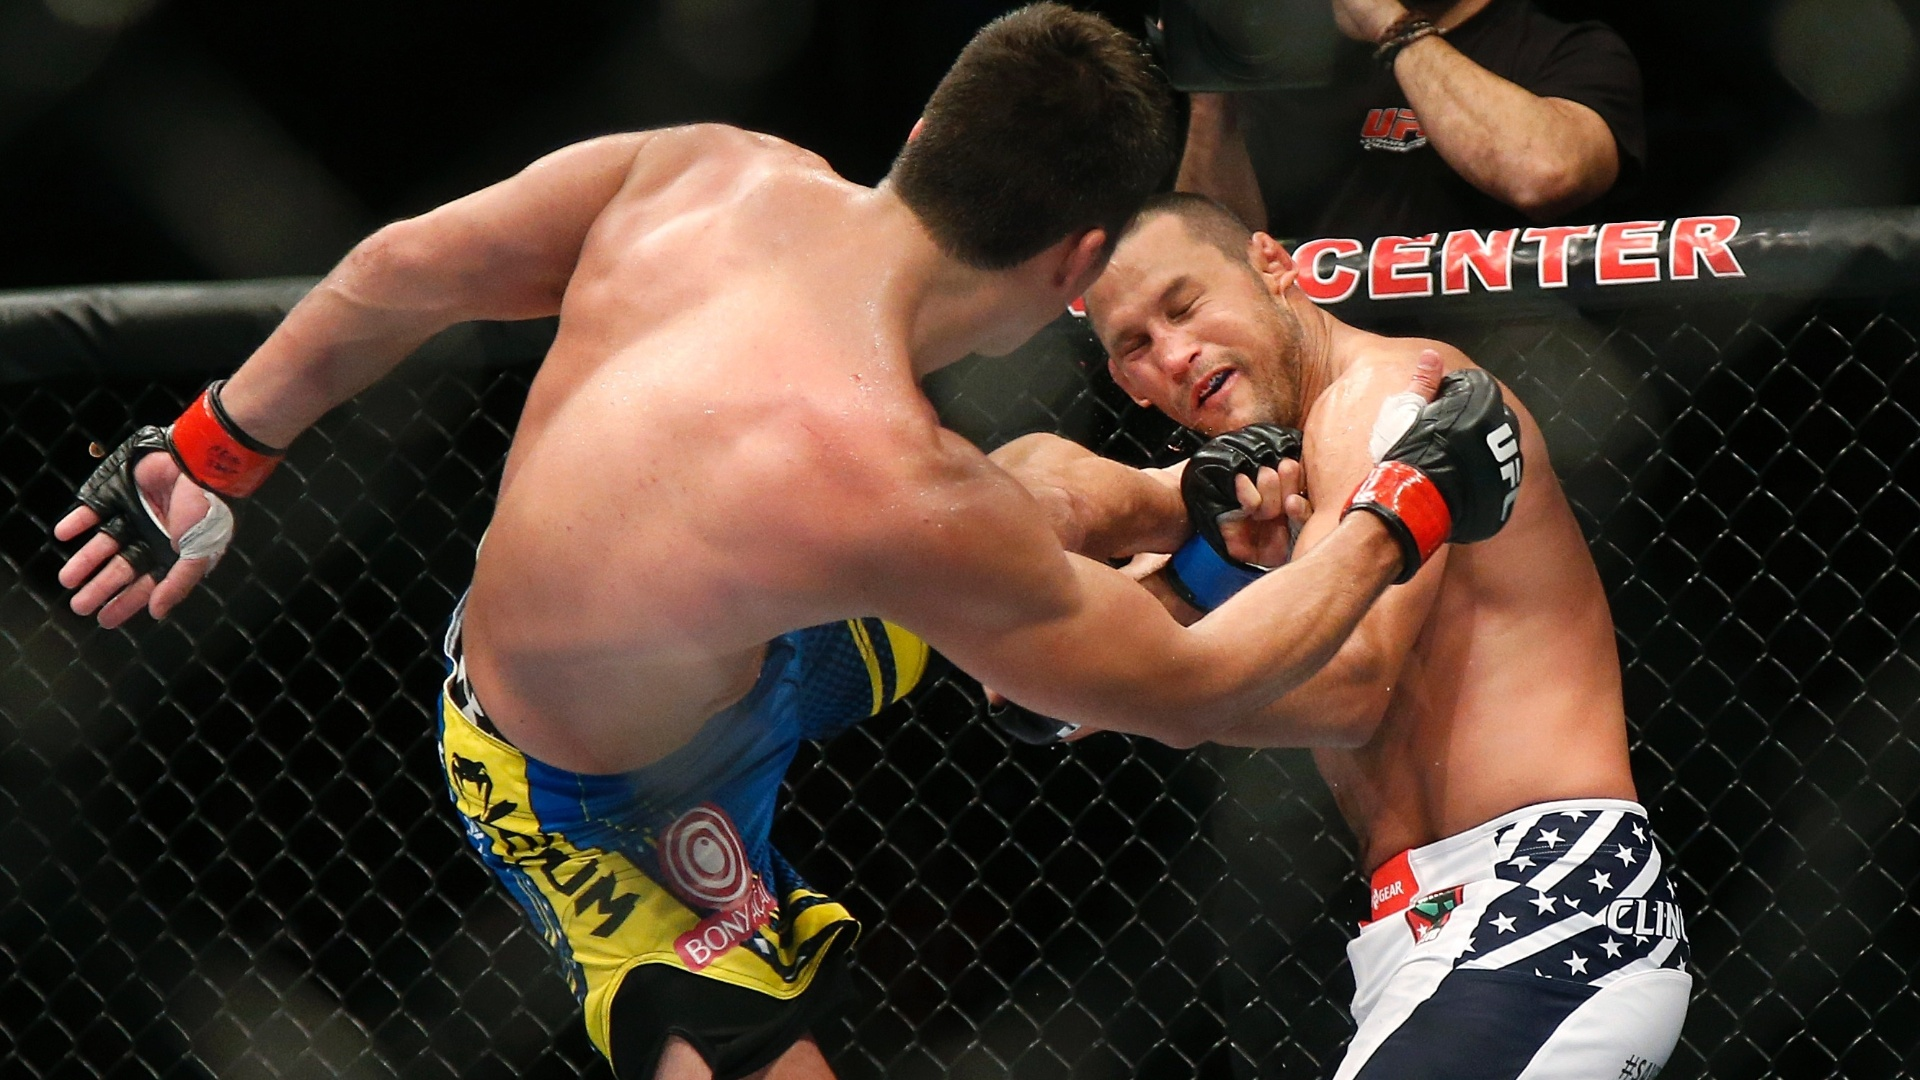 Lyoto Machida acerta chute em Dan Henderson em vitria no UFC 157